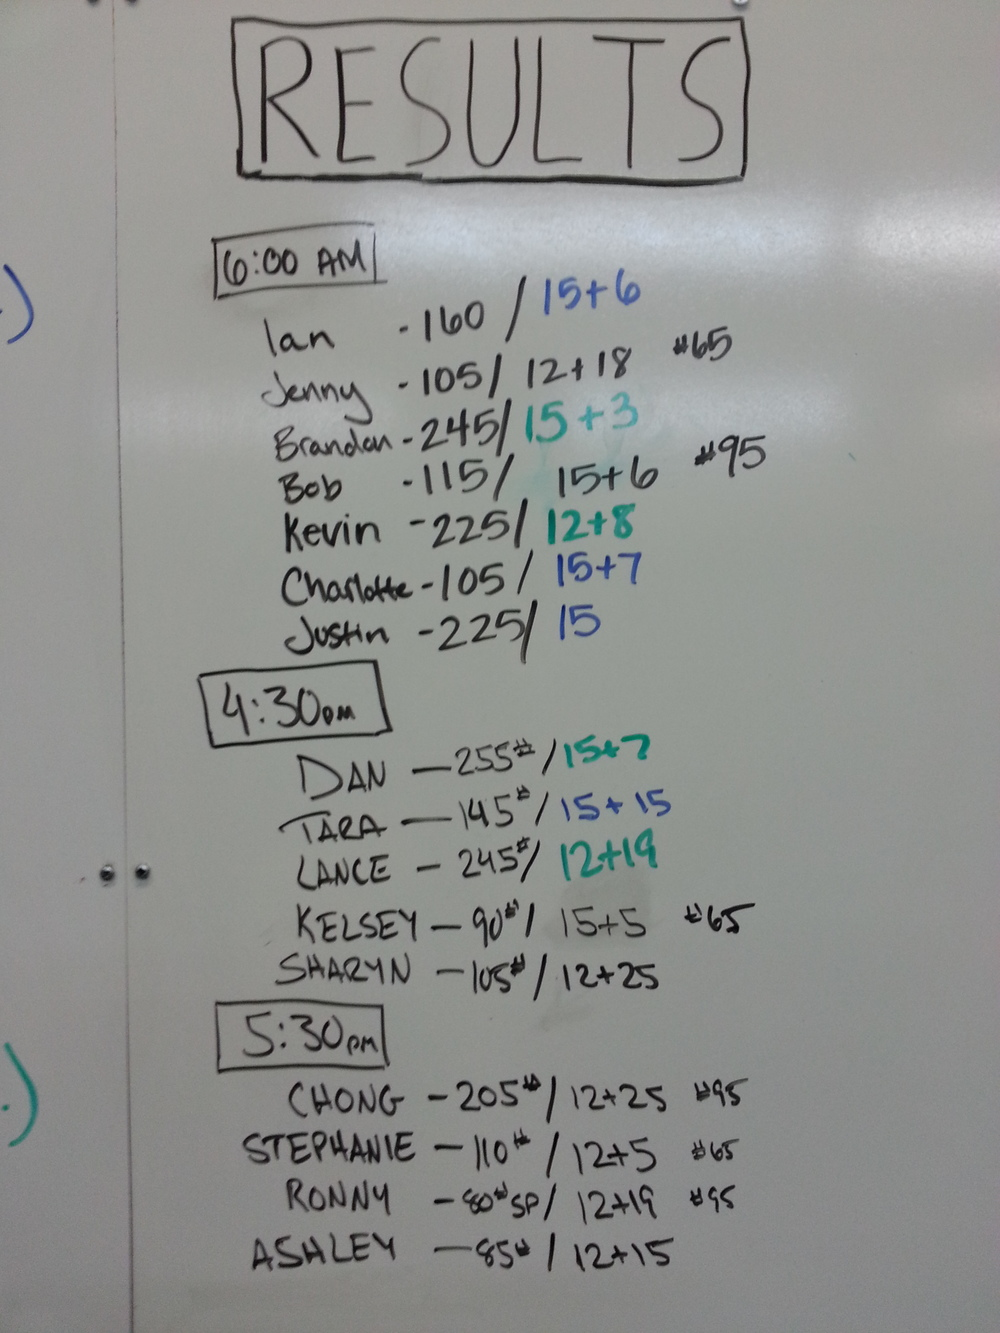 Results from 11/27